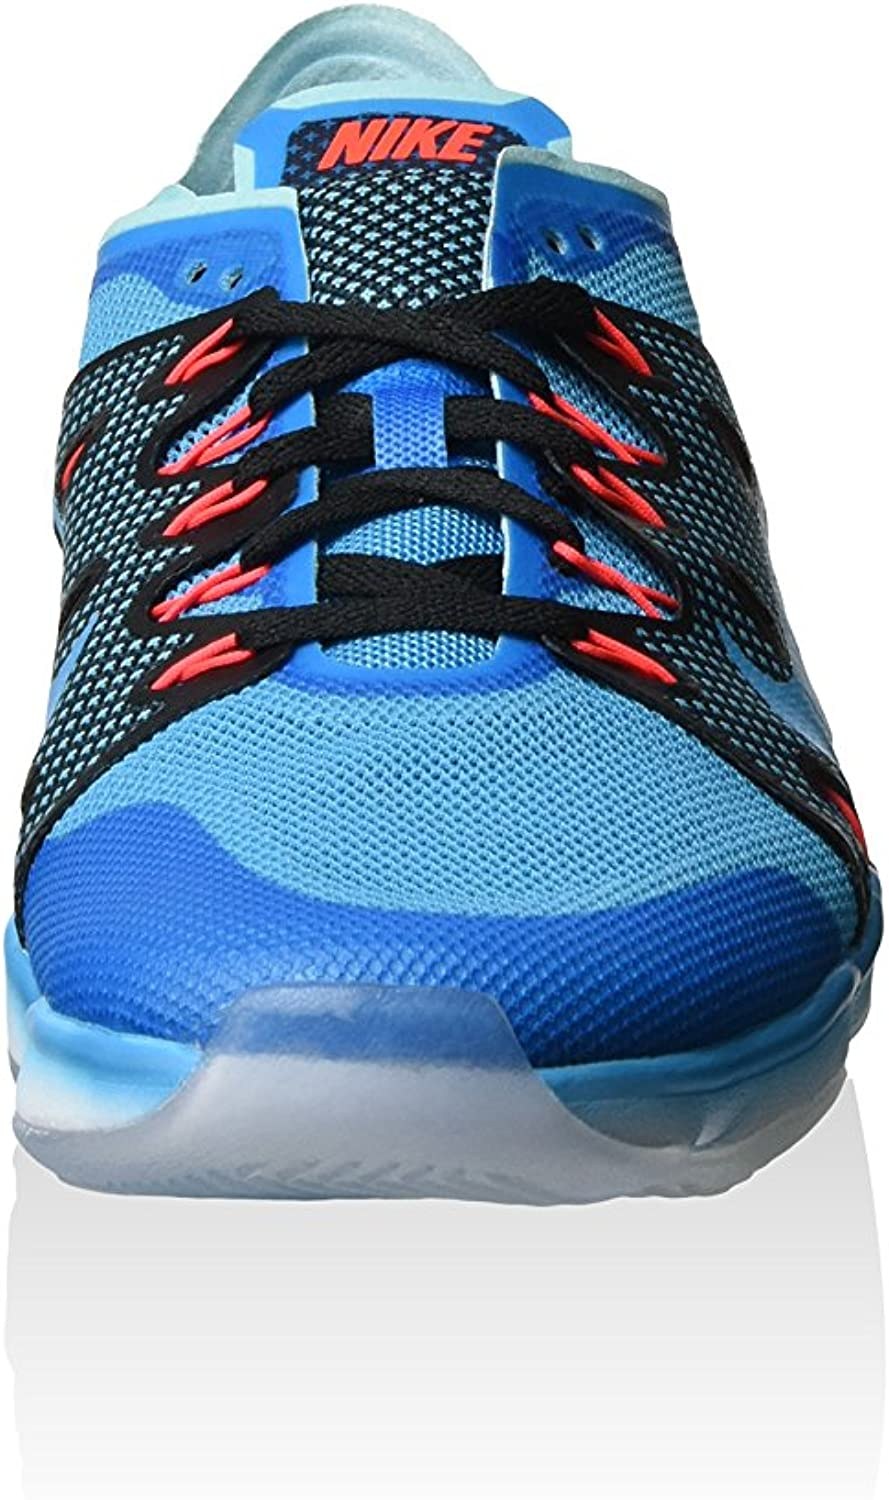 Nike Zoom Fit Agility 2, Sneakers Basses Femme: